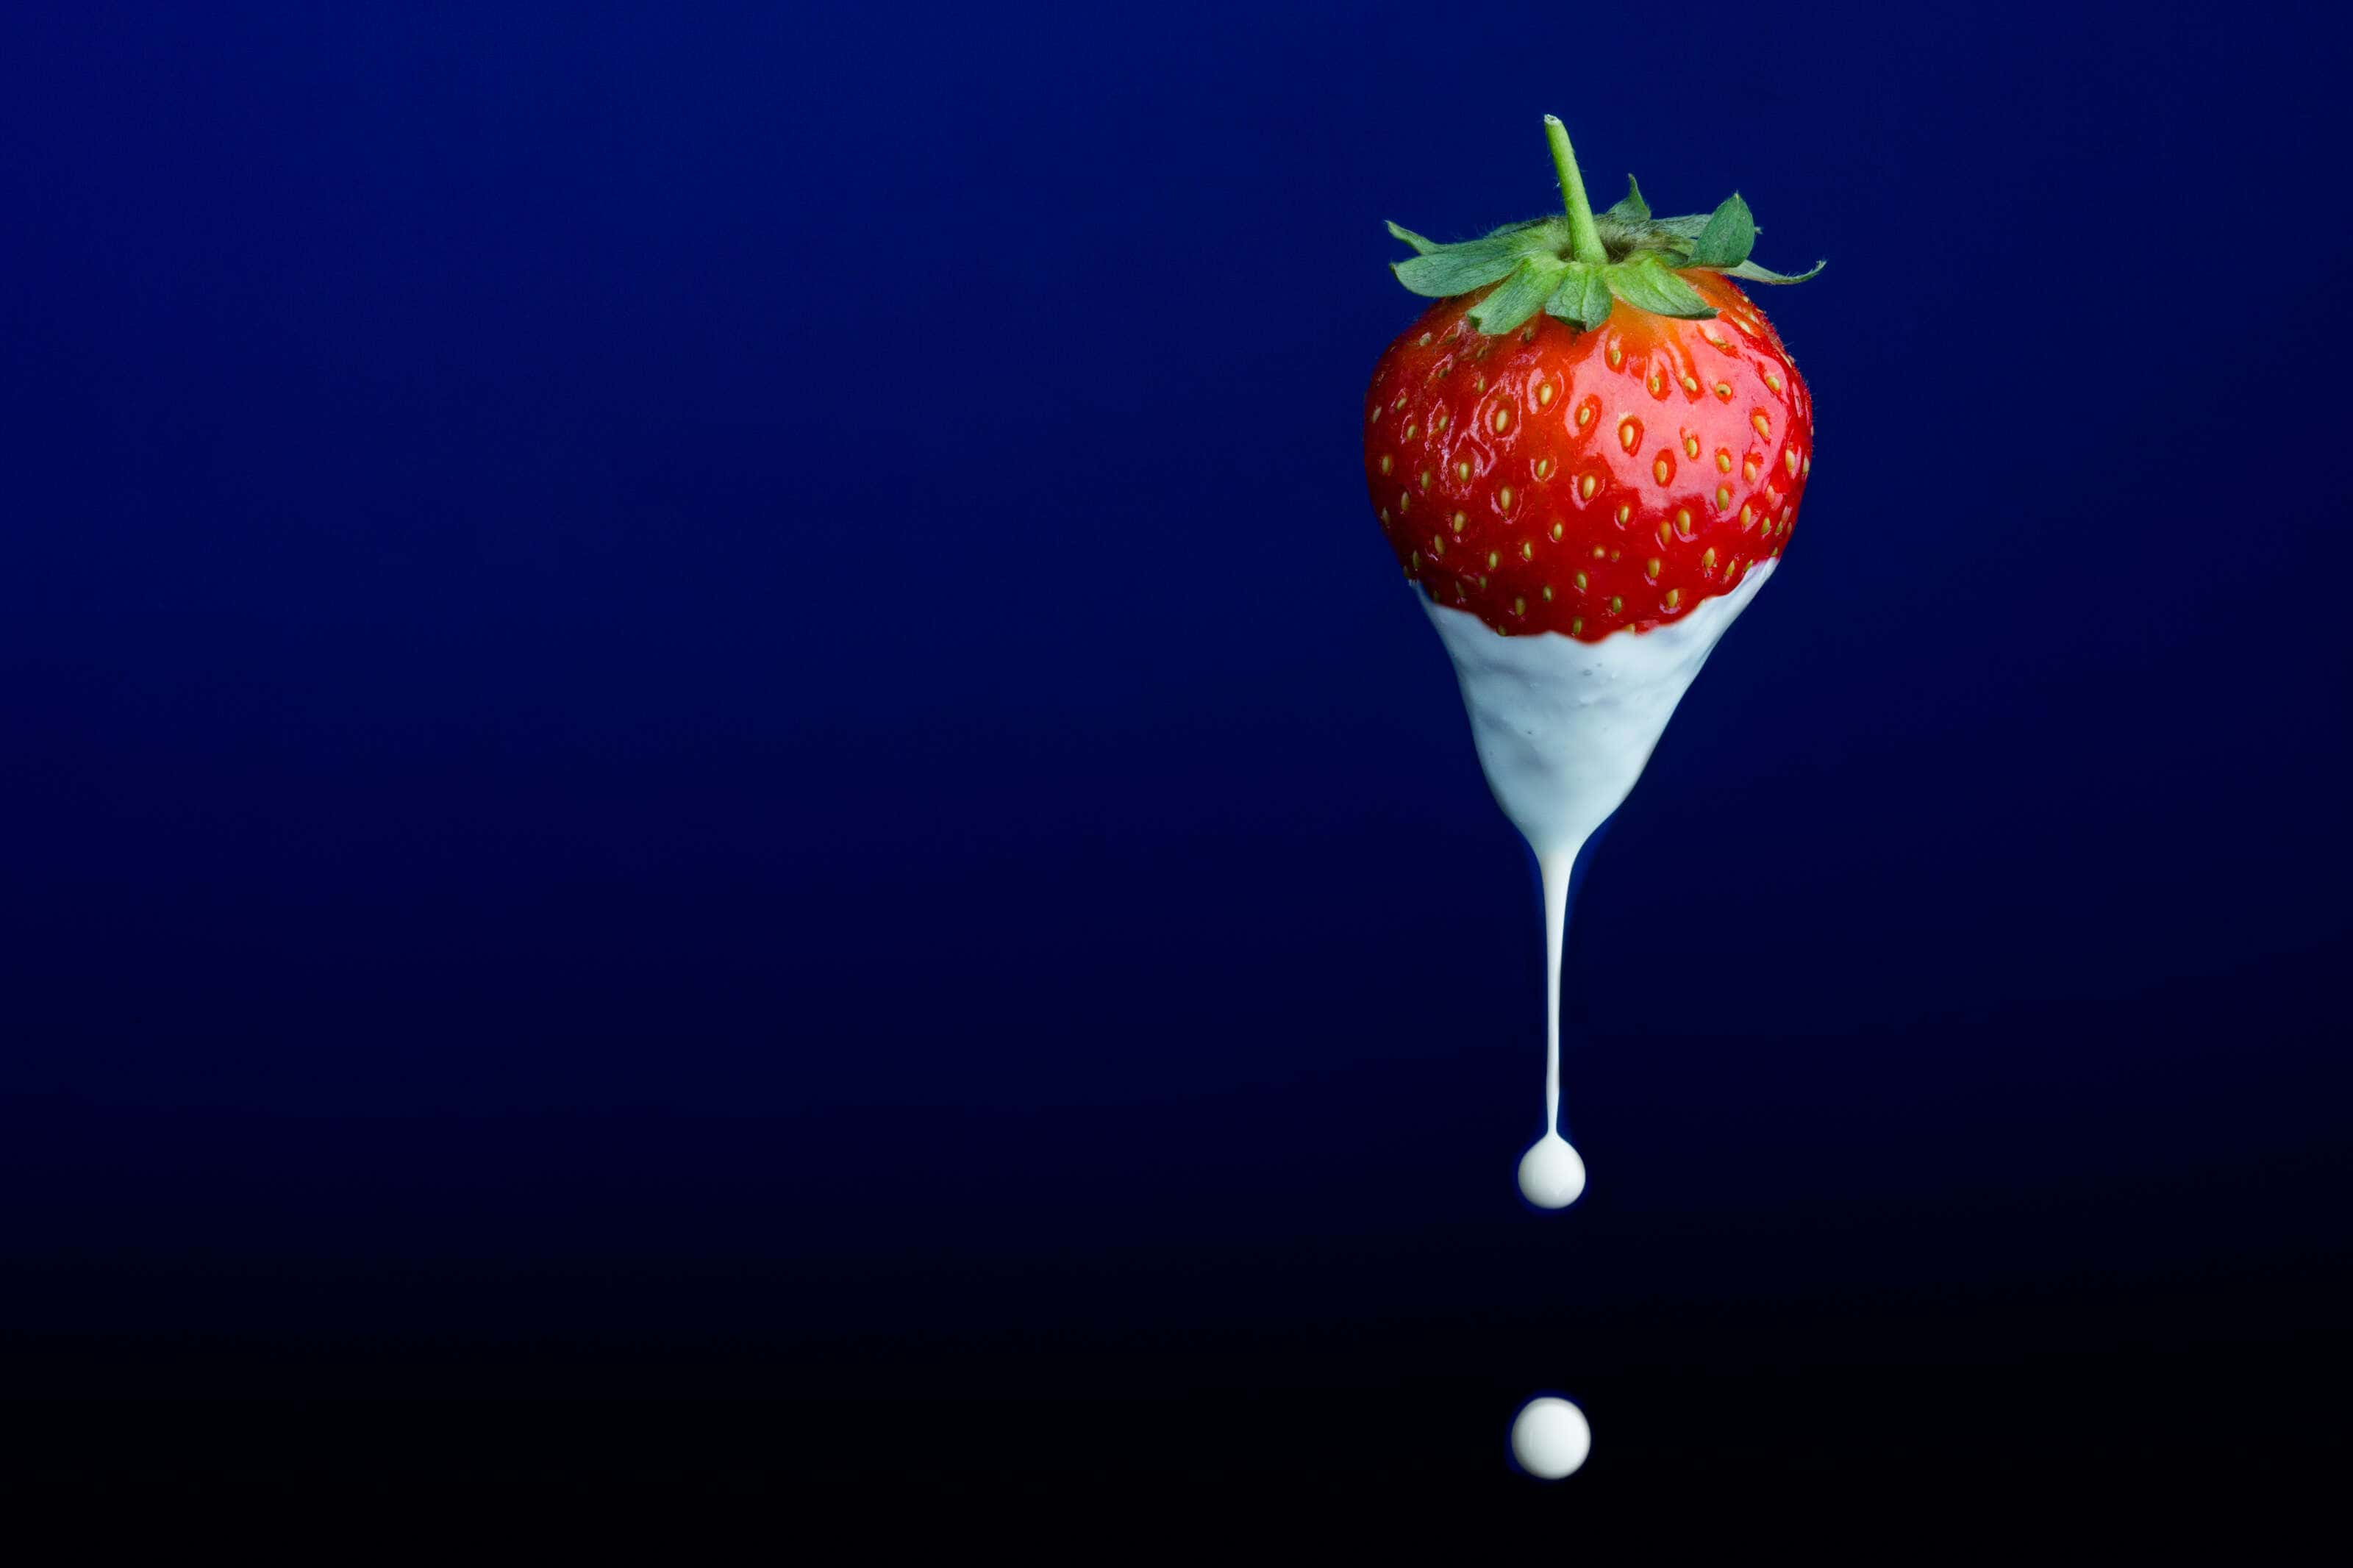 a strawberry suspended mid air with a drip of cream falling off it.with a drip of cream